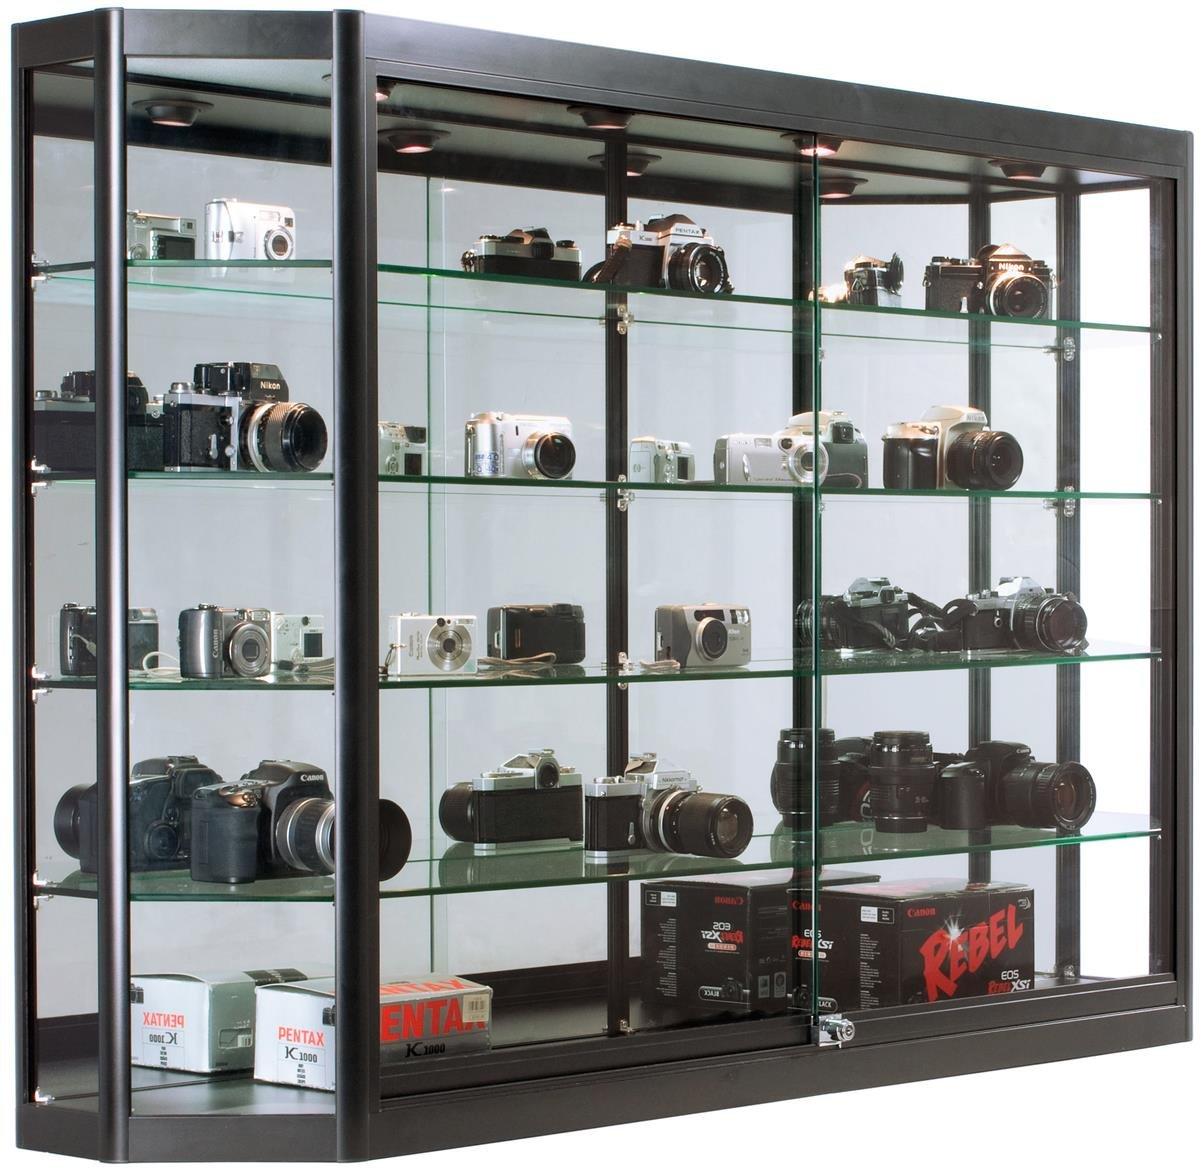 Displays2go Wall Hanging Display Cabinets for Retail Stores, (4) Tempered Glass Shelves, Aluminum Frame – Black (WC6012LEDB)